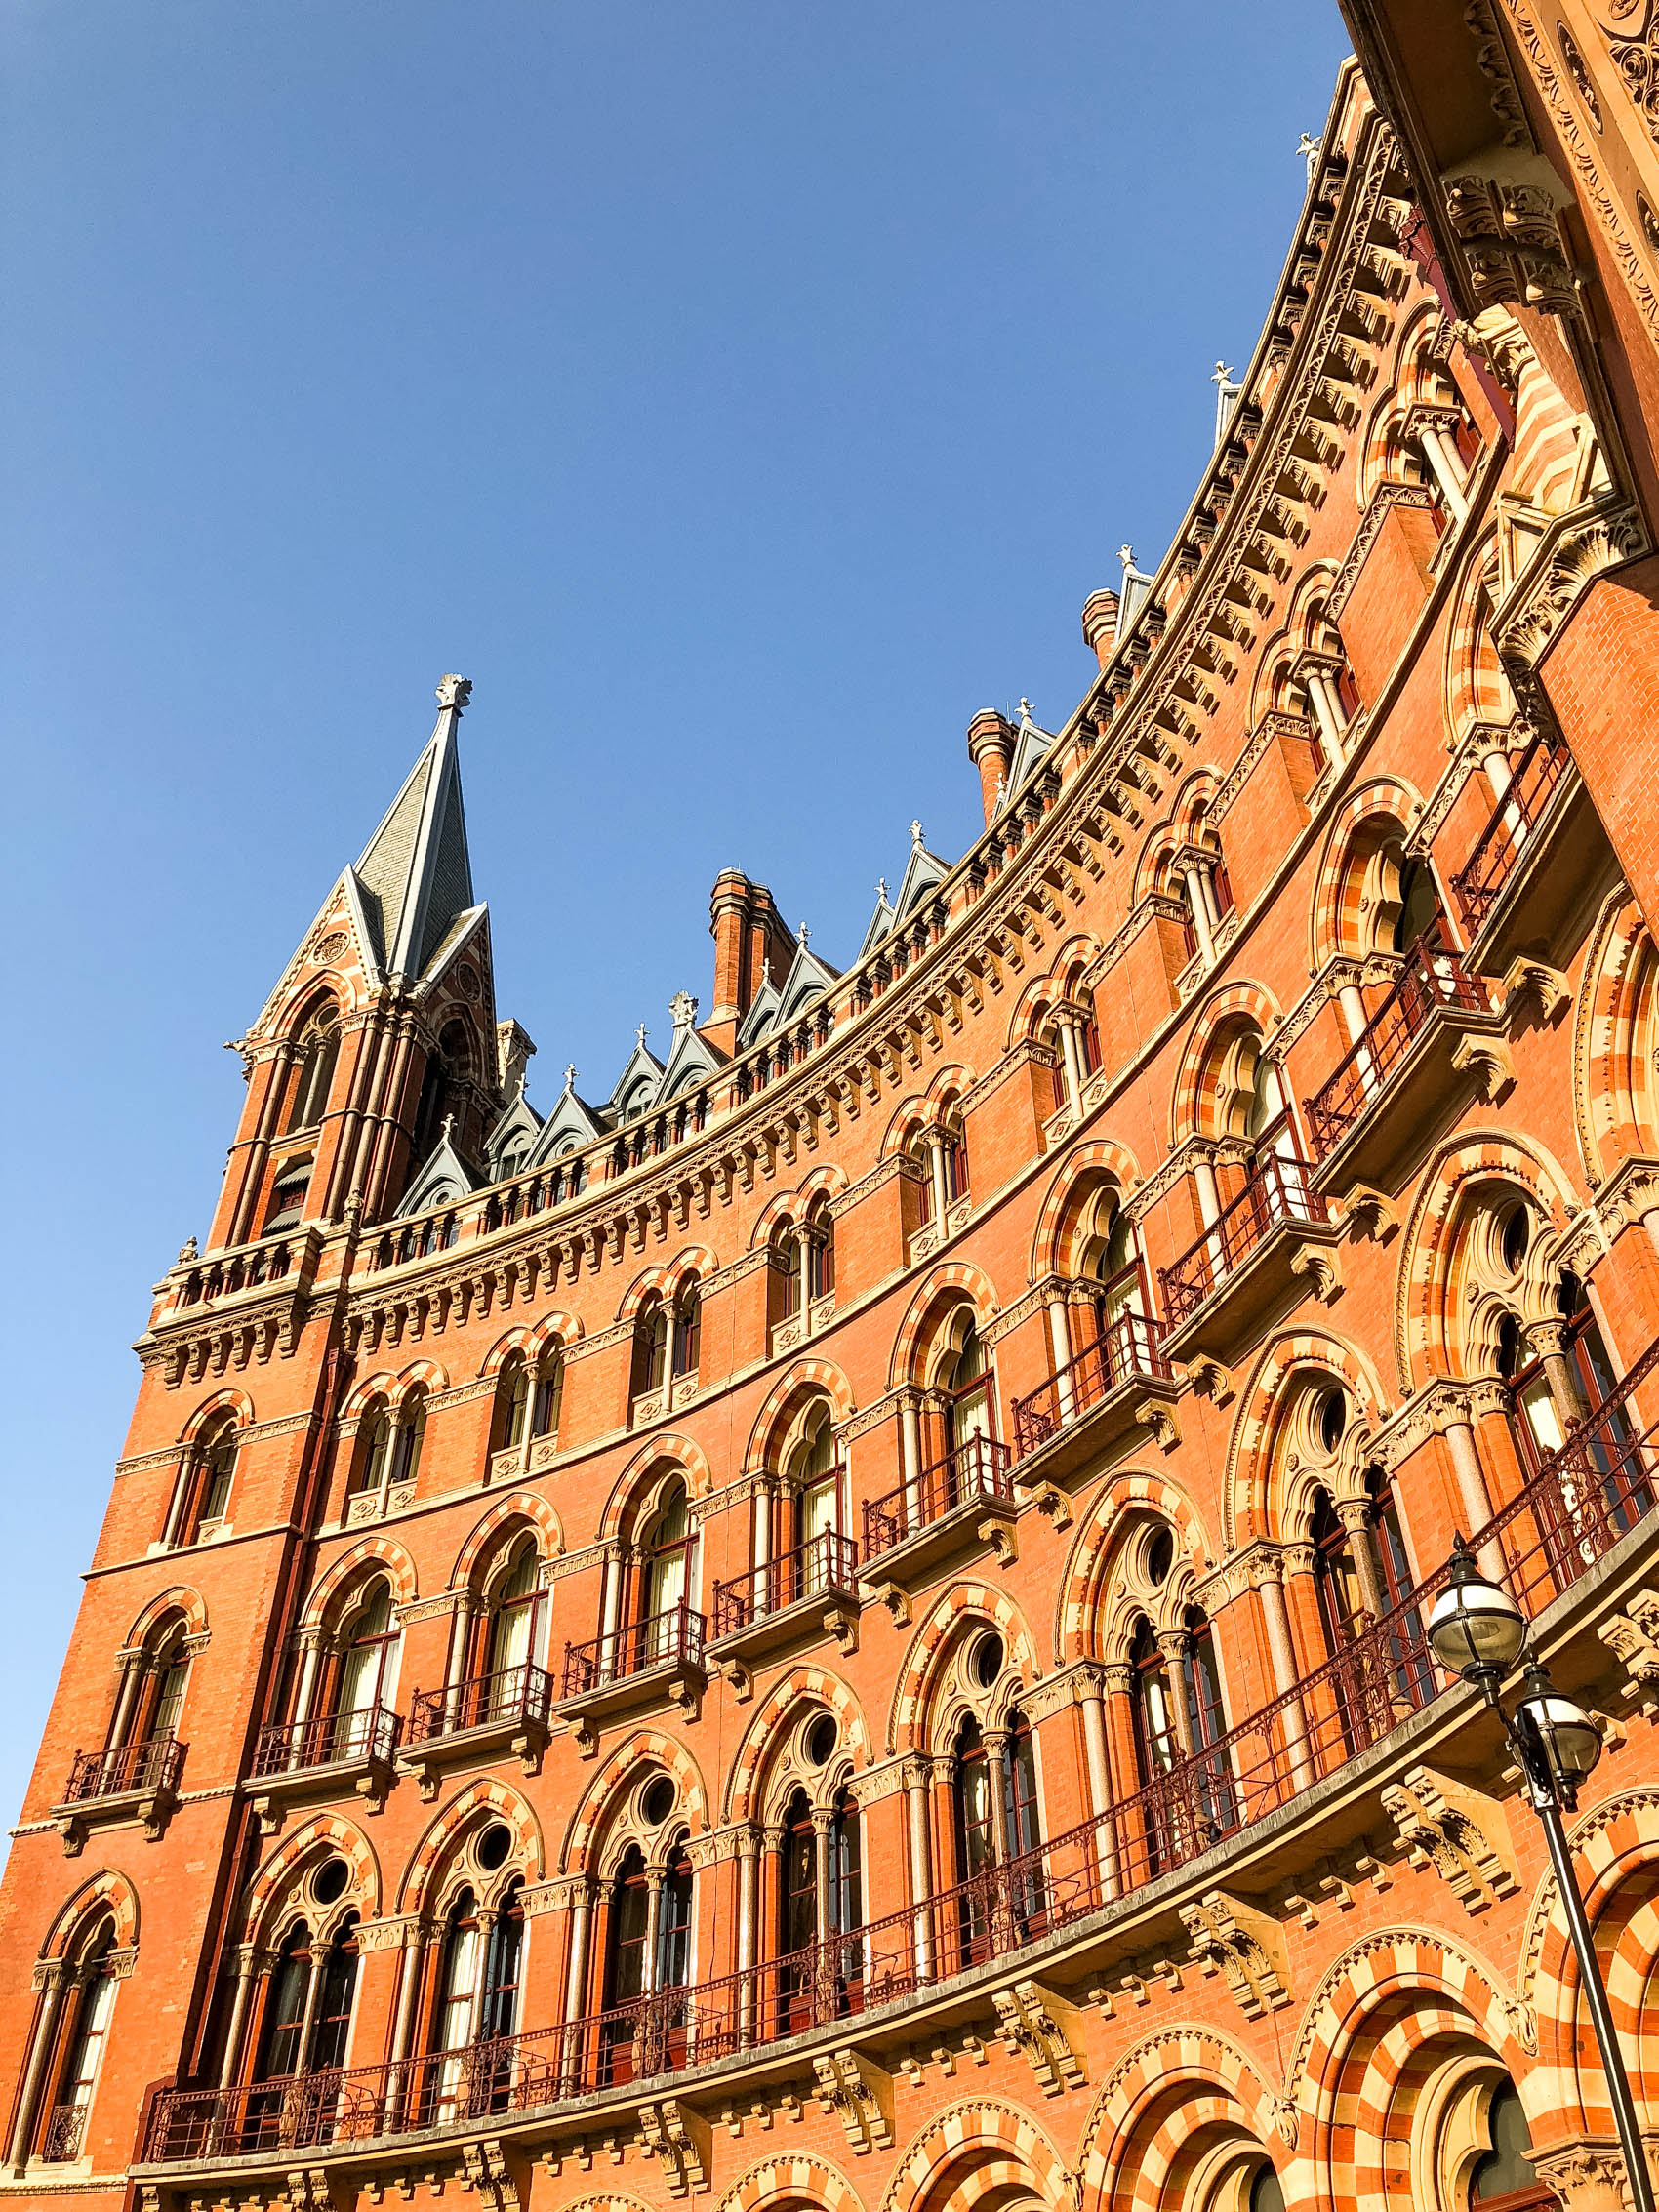 St Pancras Renaissance Hotel London | The best hotels in London | The best places to stay in London | Harry Potter filming locations in London | Spice Girls Wannabe music video location | London Travel Guide